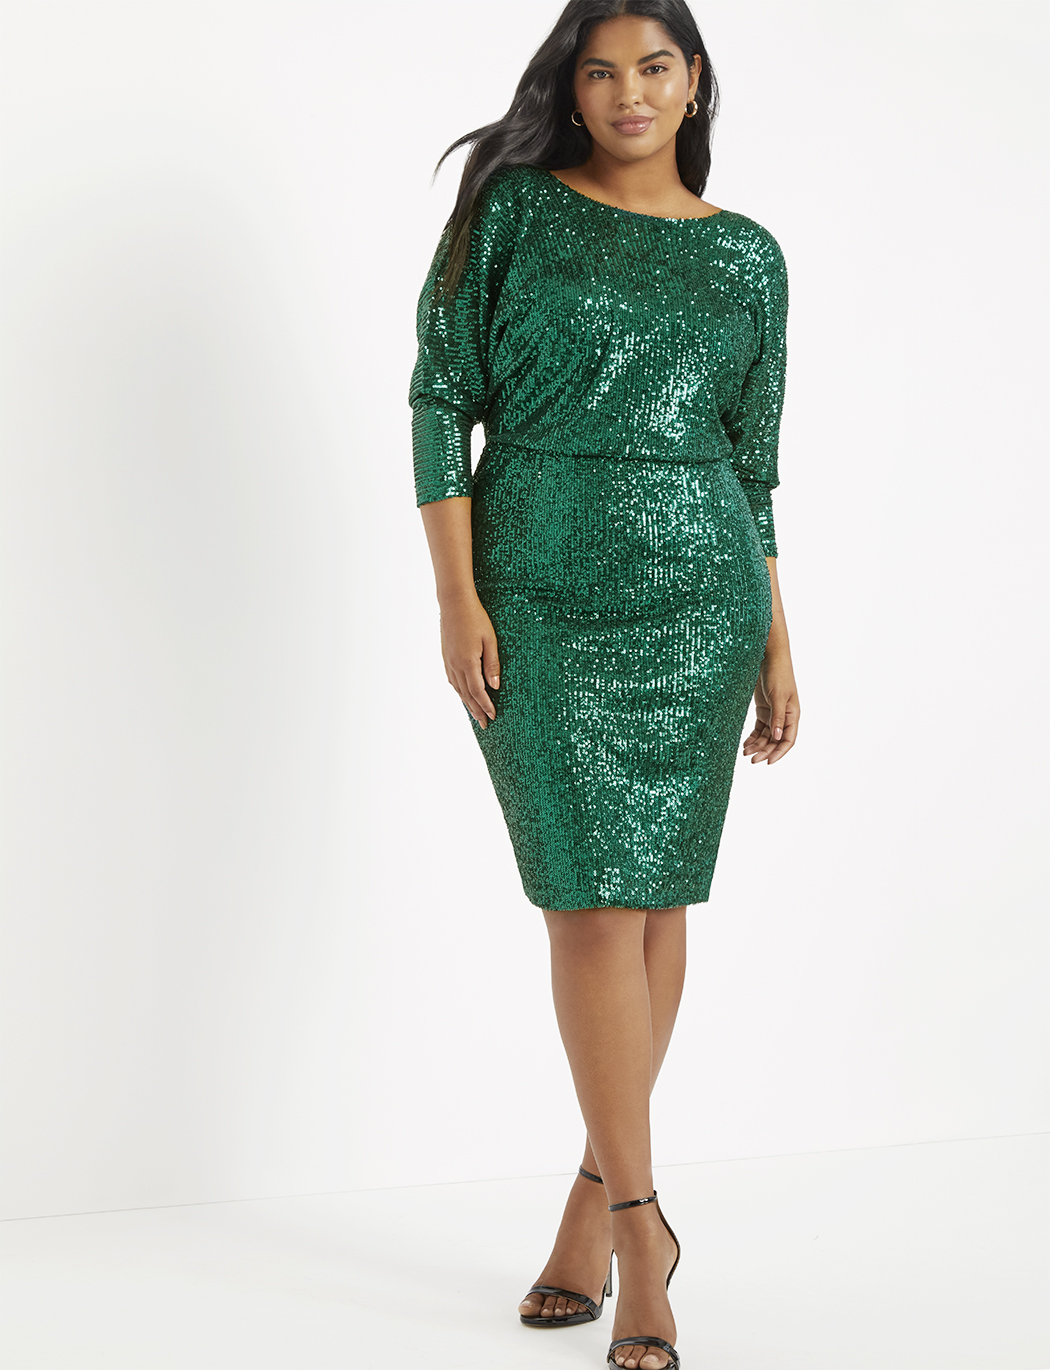 Sequin Dolman Sleeve Dress | Women\'s Plus Size Dresses | ELOQUII